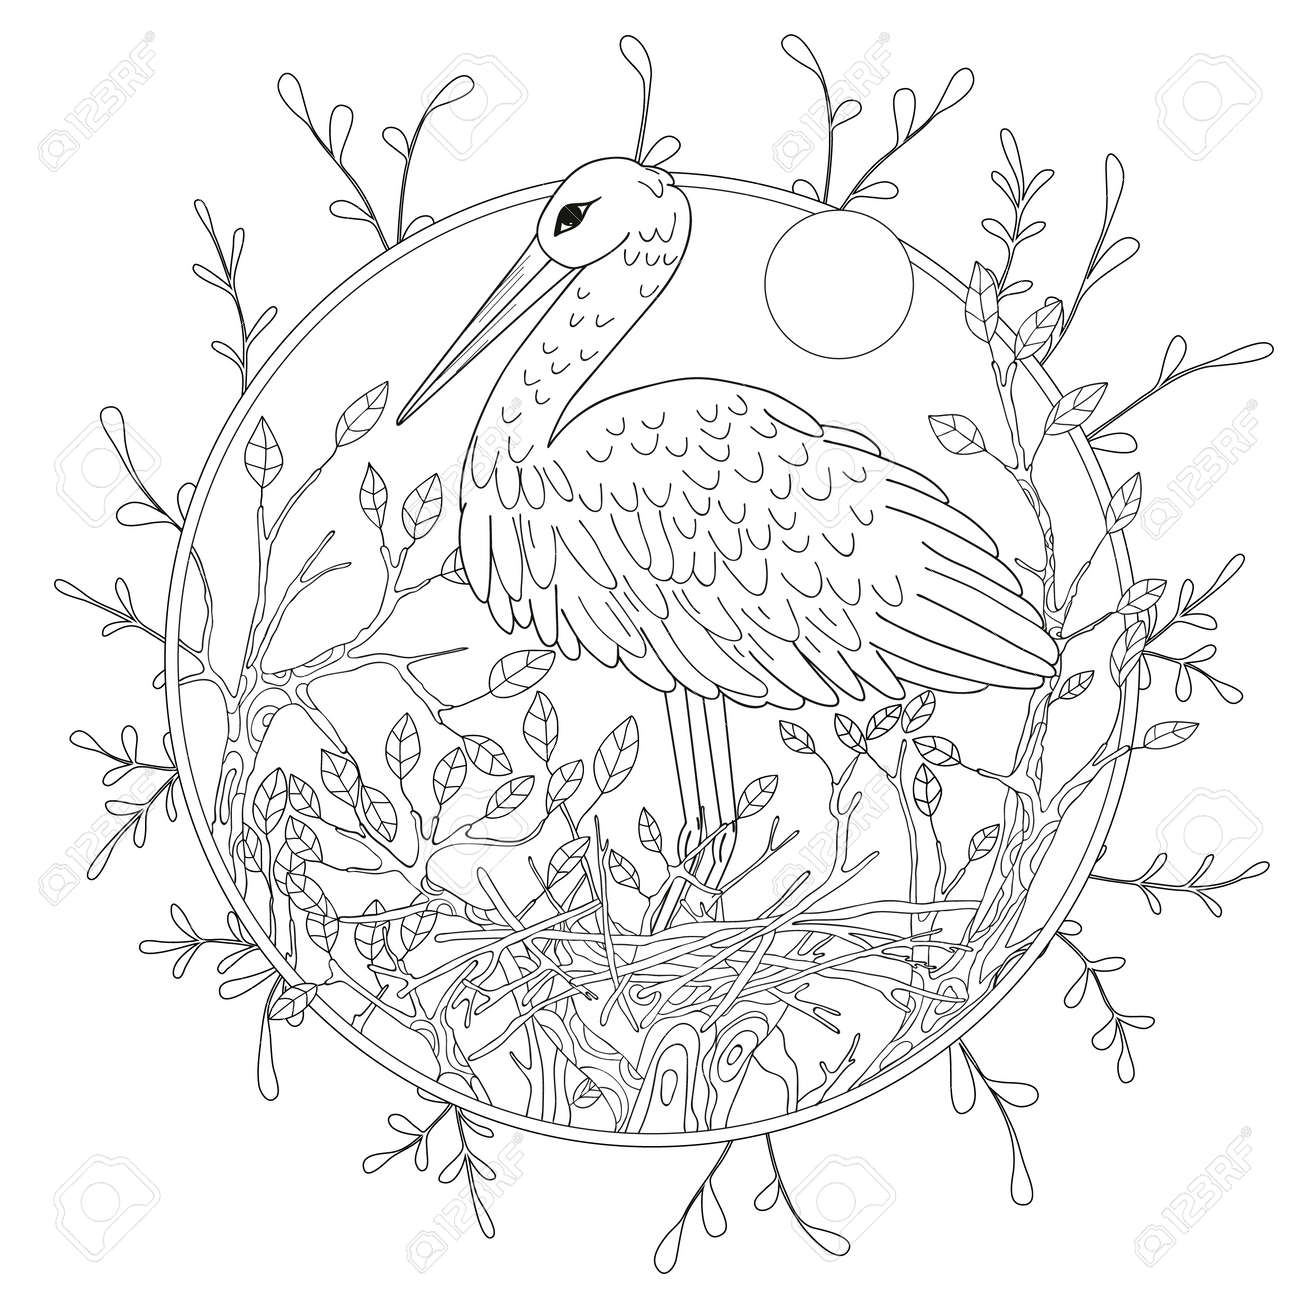 Stylized Pelican Bird Among Foliage Freehand Sketch For Adult Anti Stress Coloring Book Page Stock